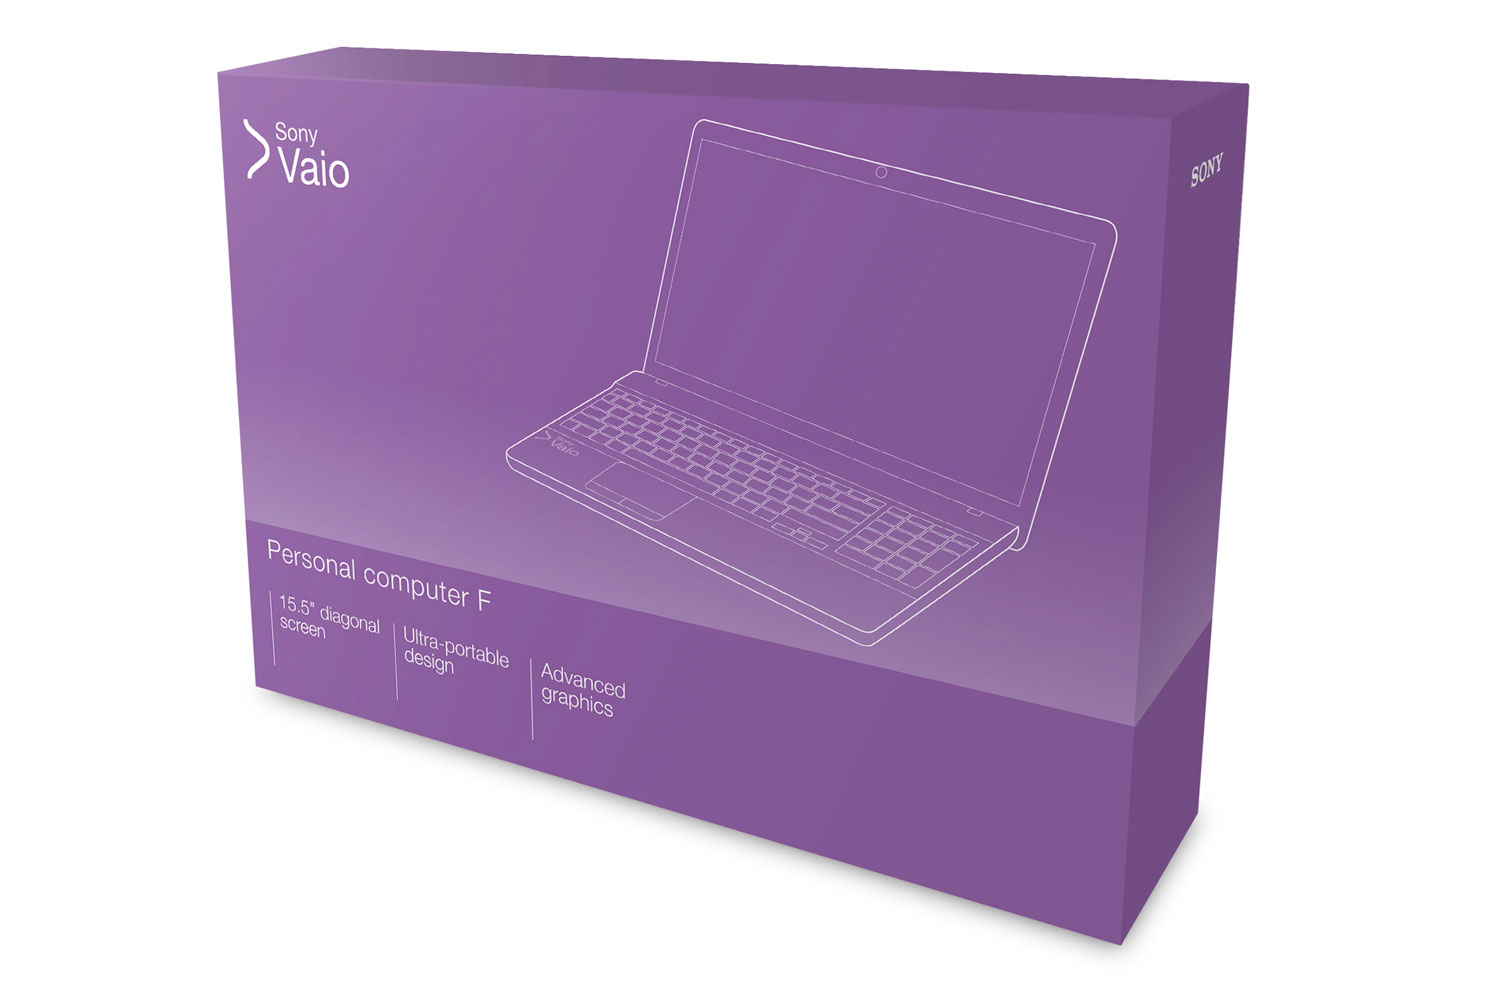 Sony Vaio packaging